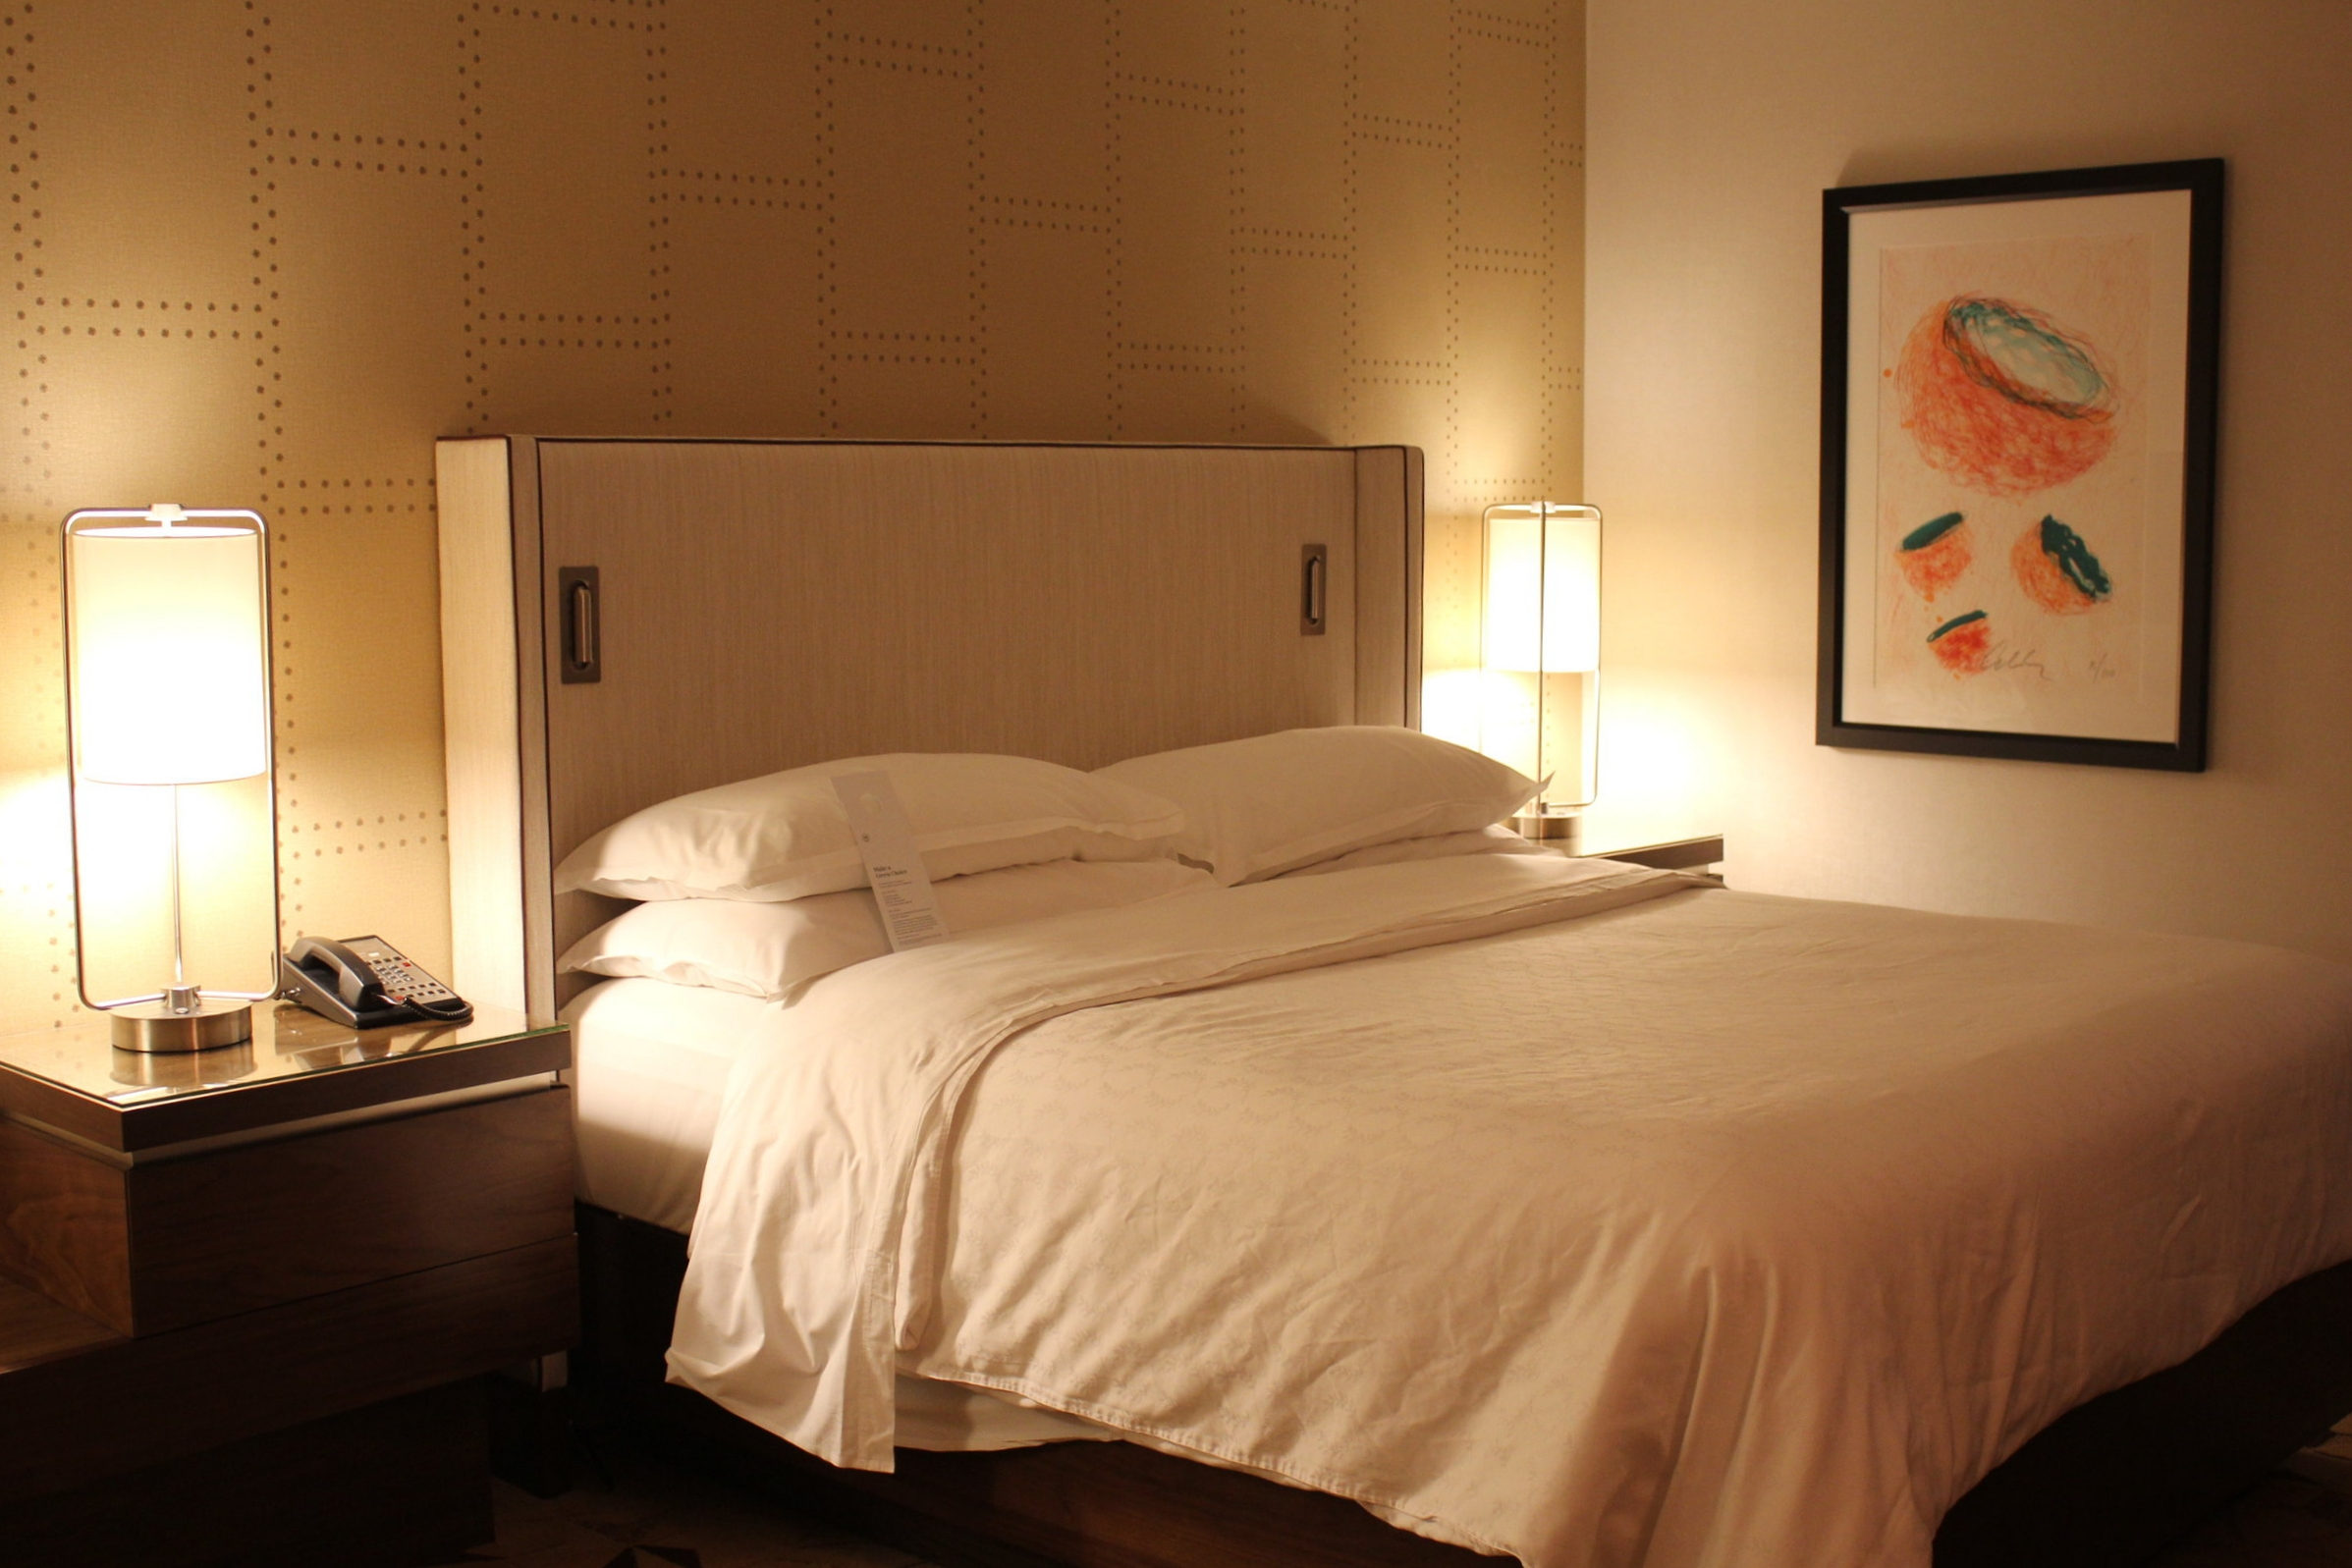 Sheraton Seattle – Bed and decor